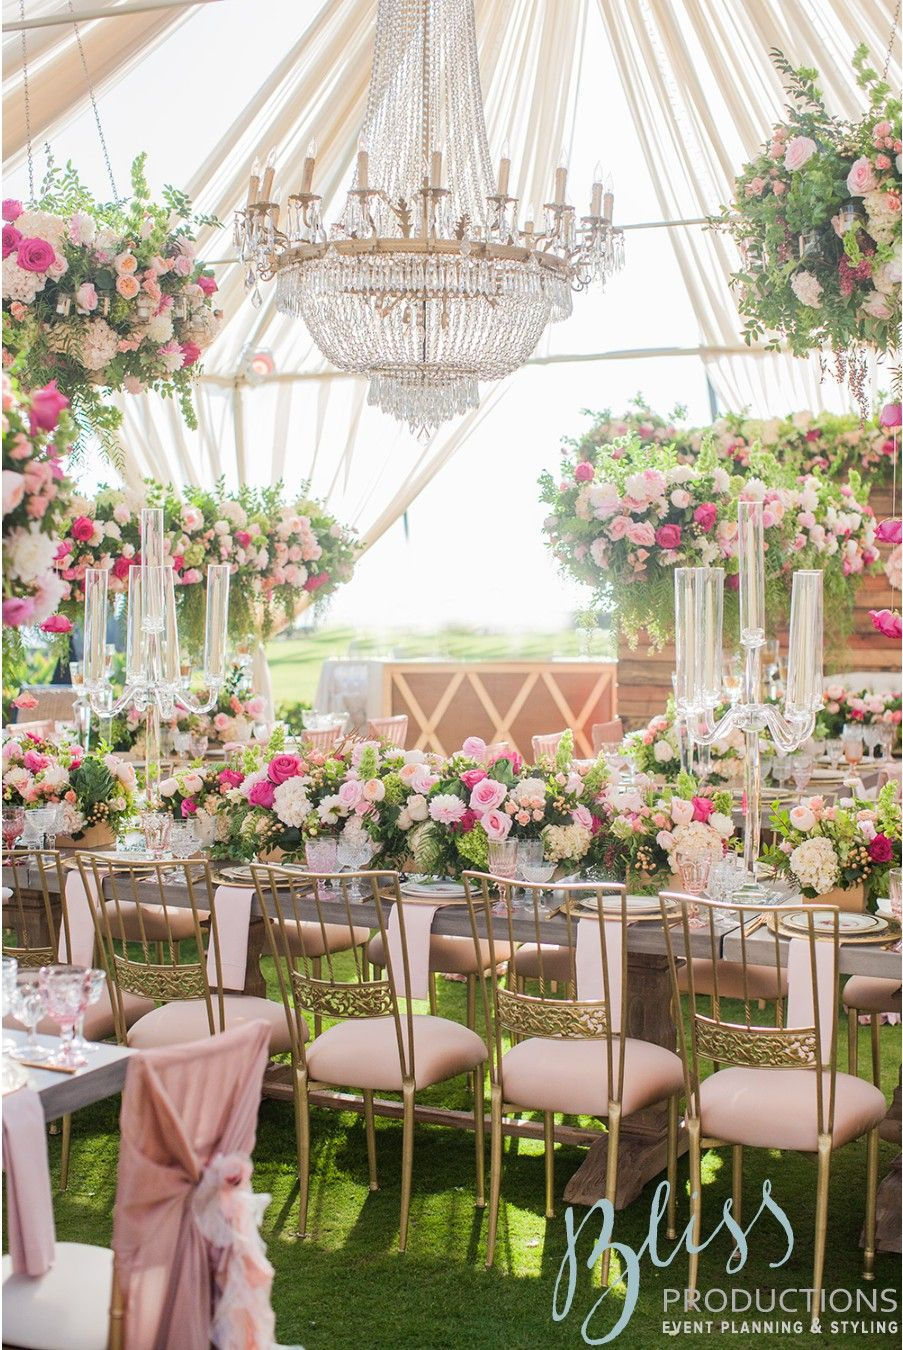 Designed and planned by bliss productions l elegant summer country